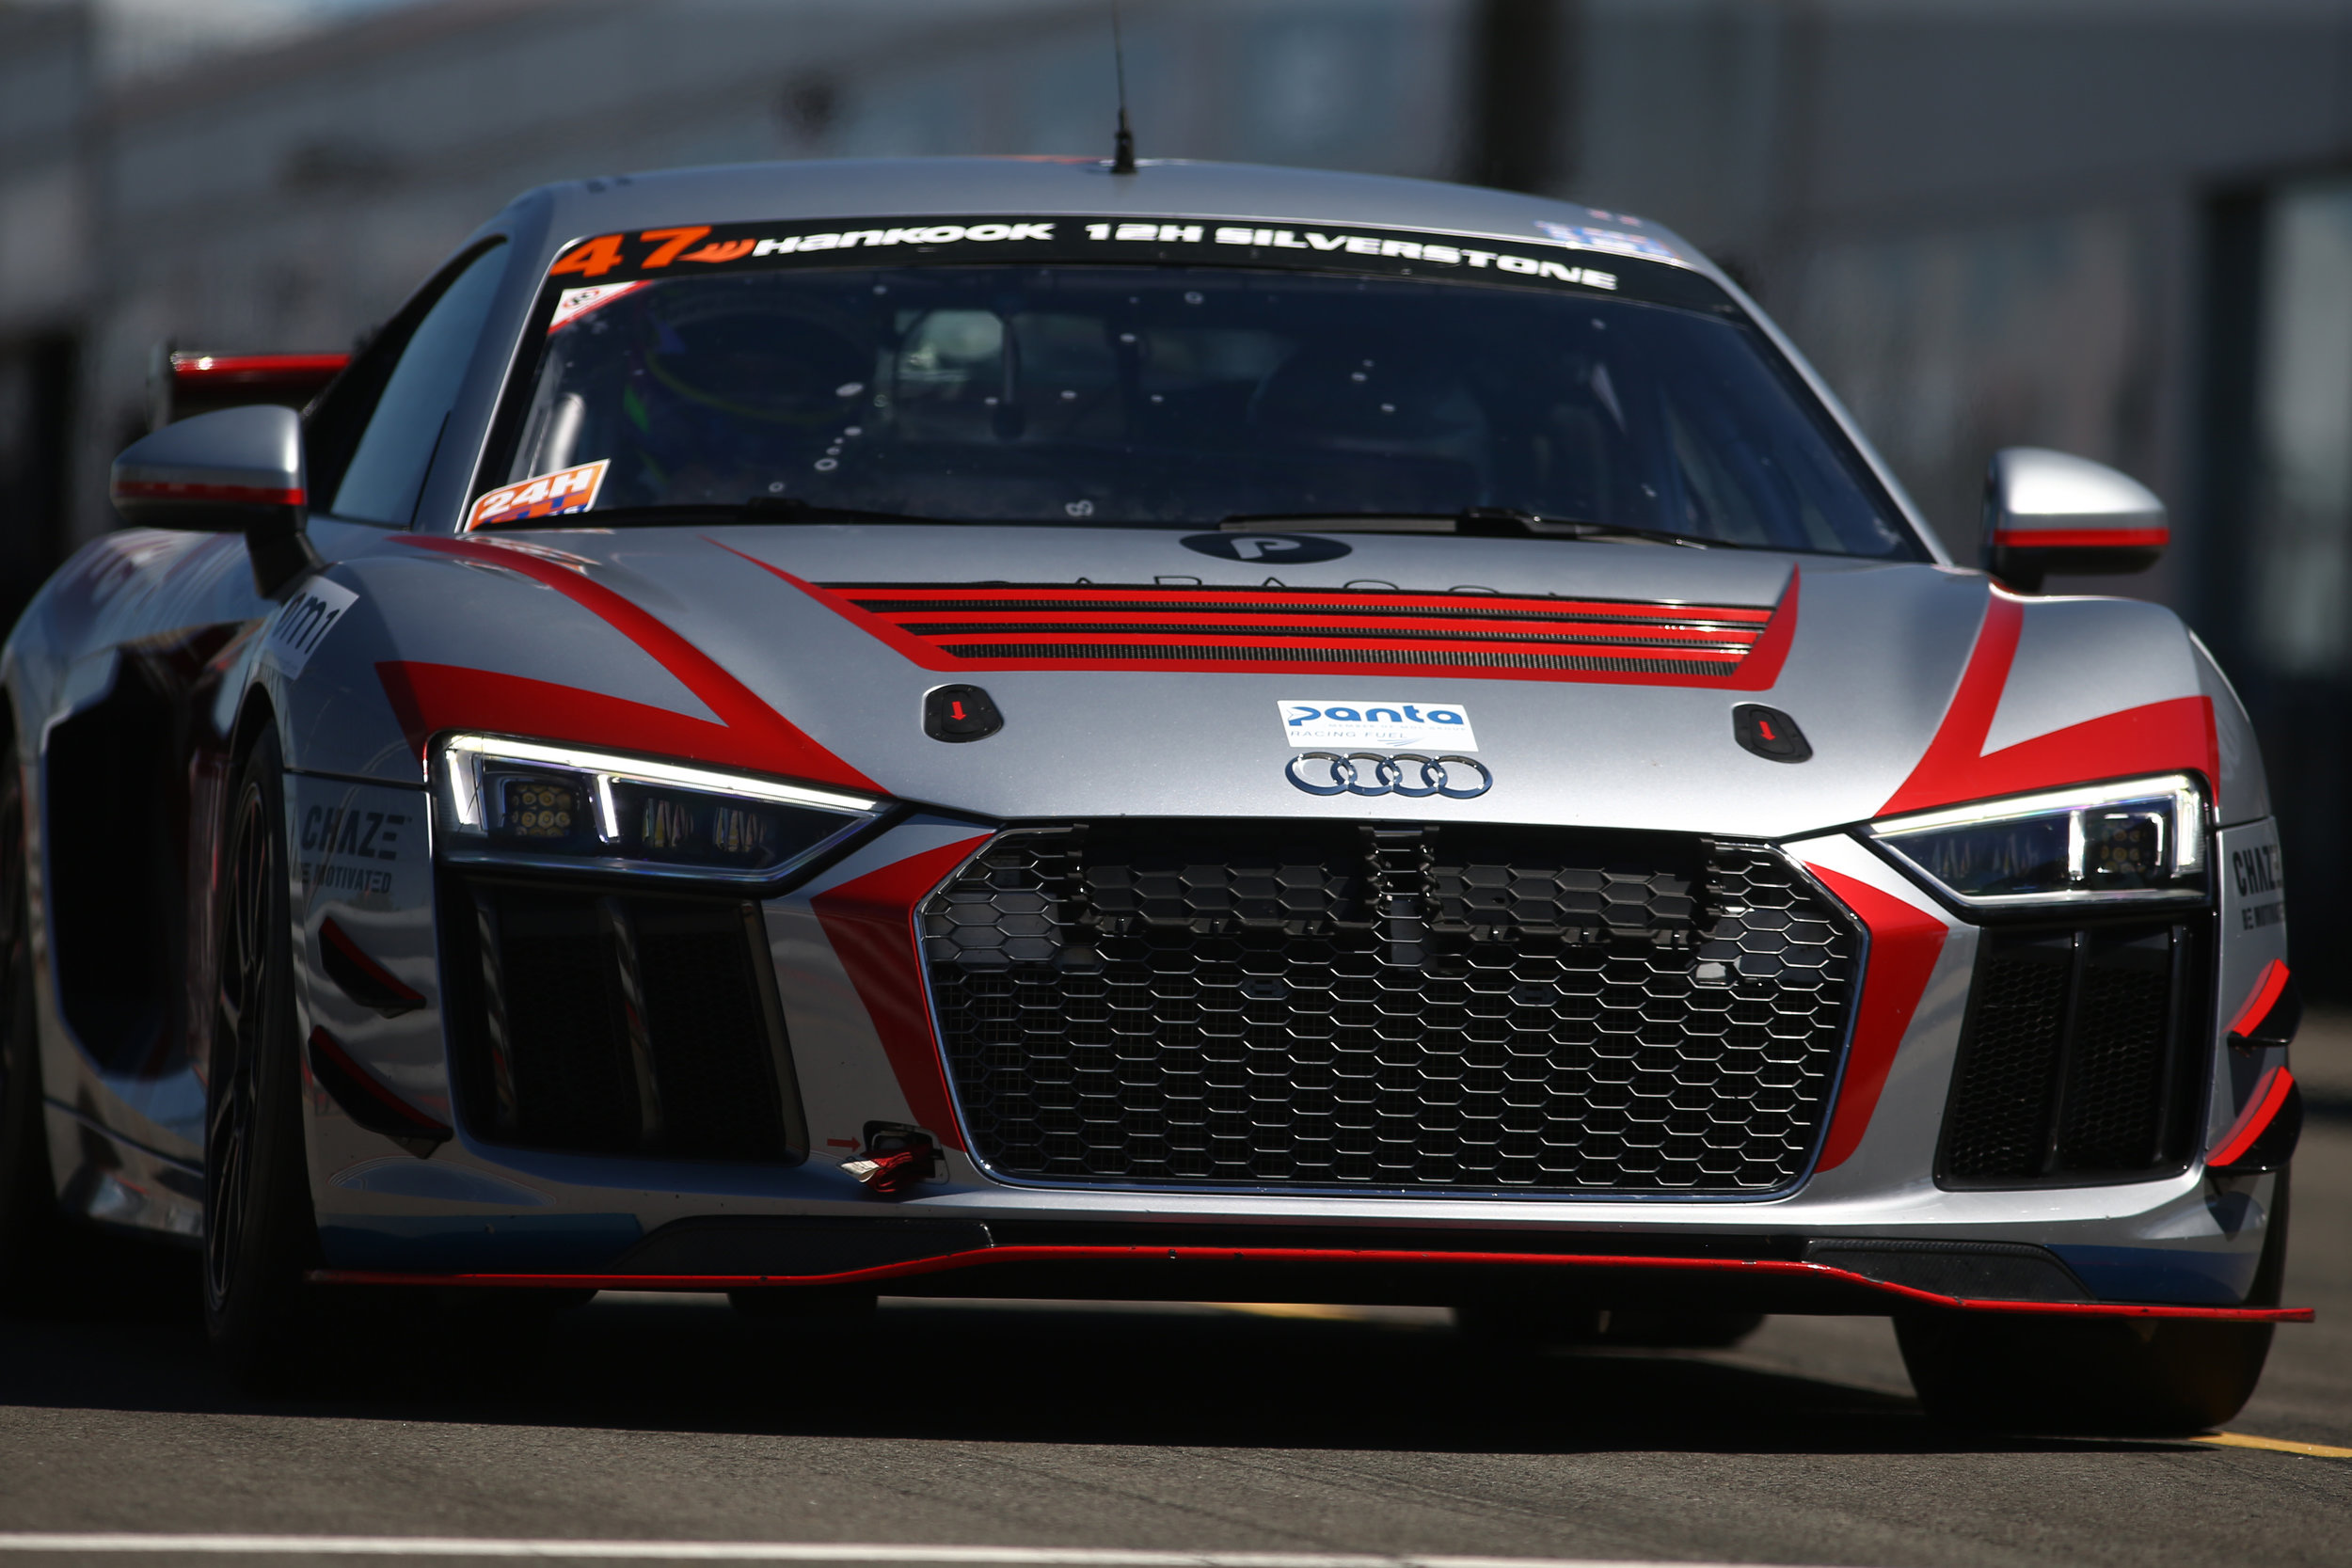 Race-winning Audi R8 LMS GT4 made its first Greystone GT appearance in 2018